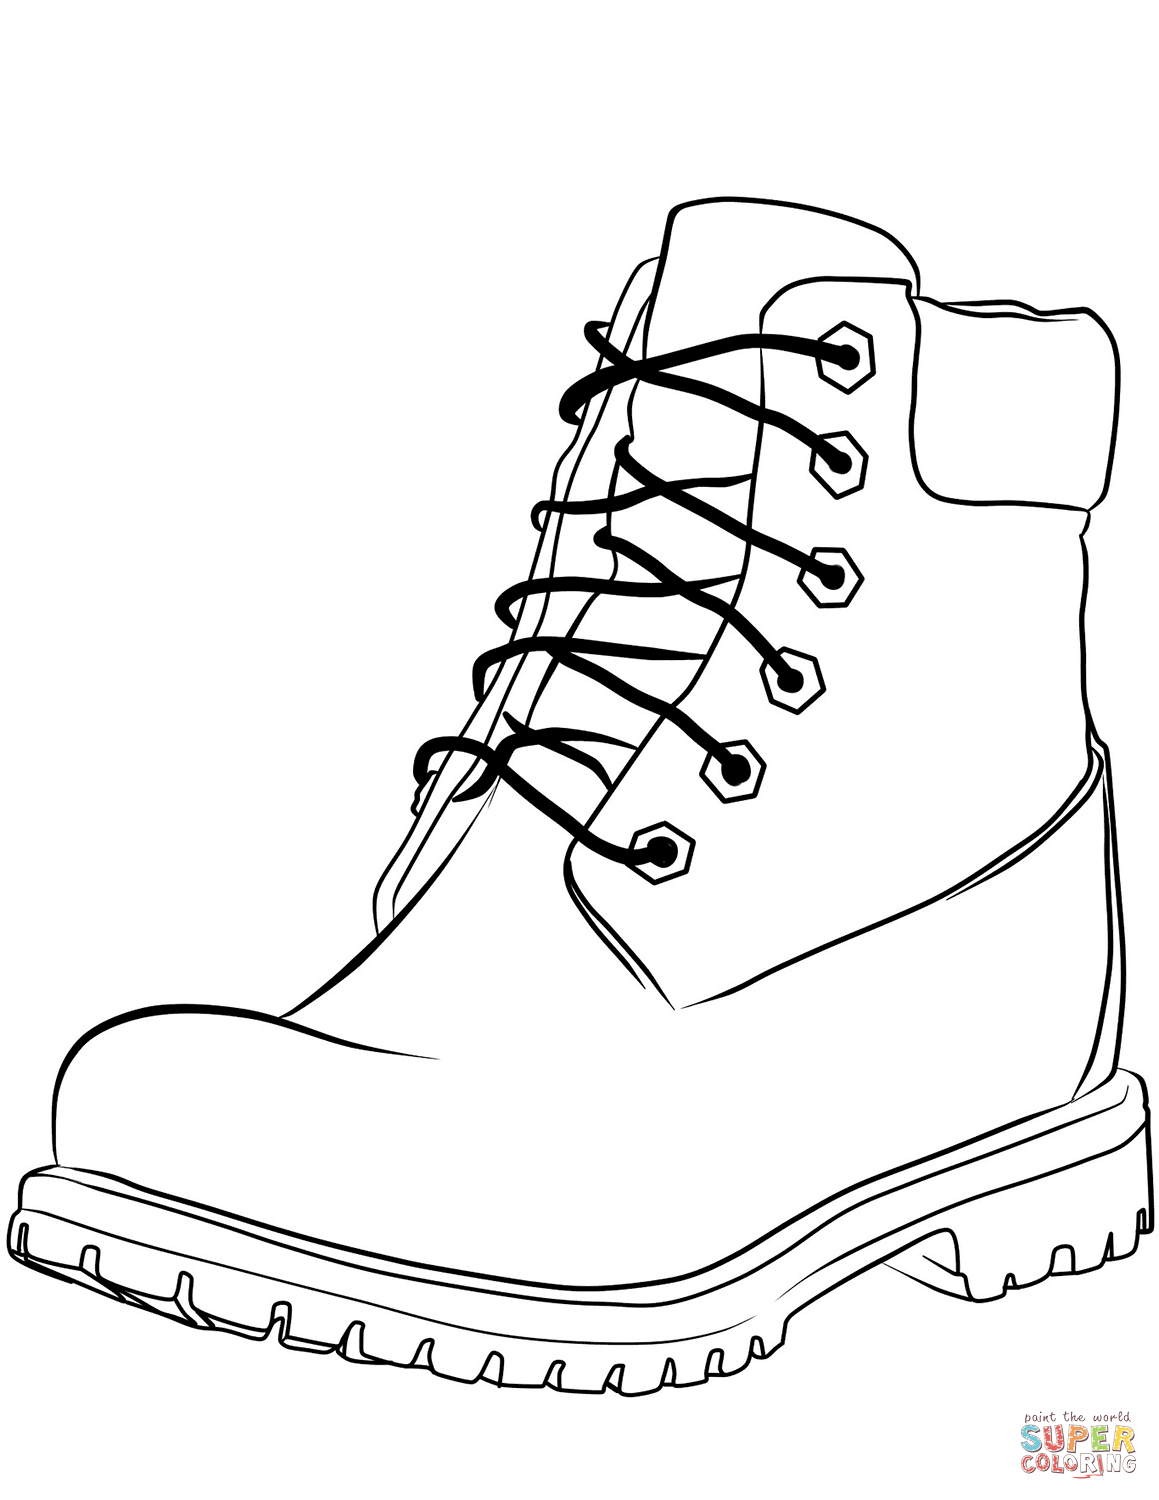 Coloring page free printable. Boot clipart work boot